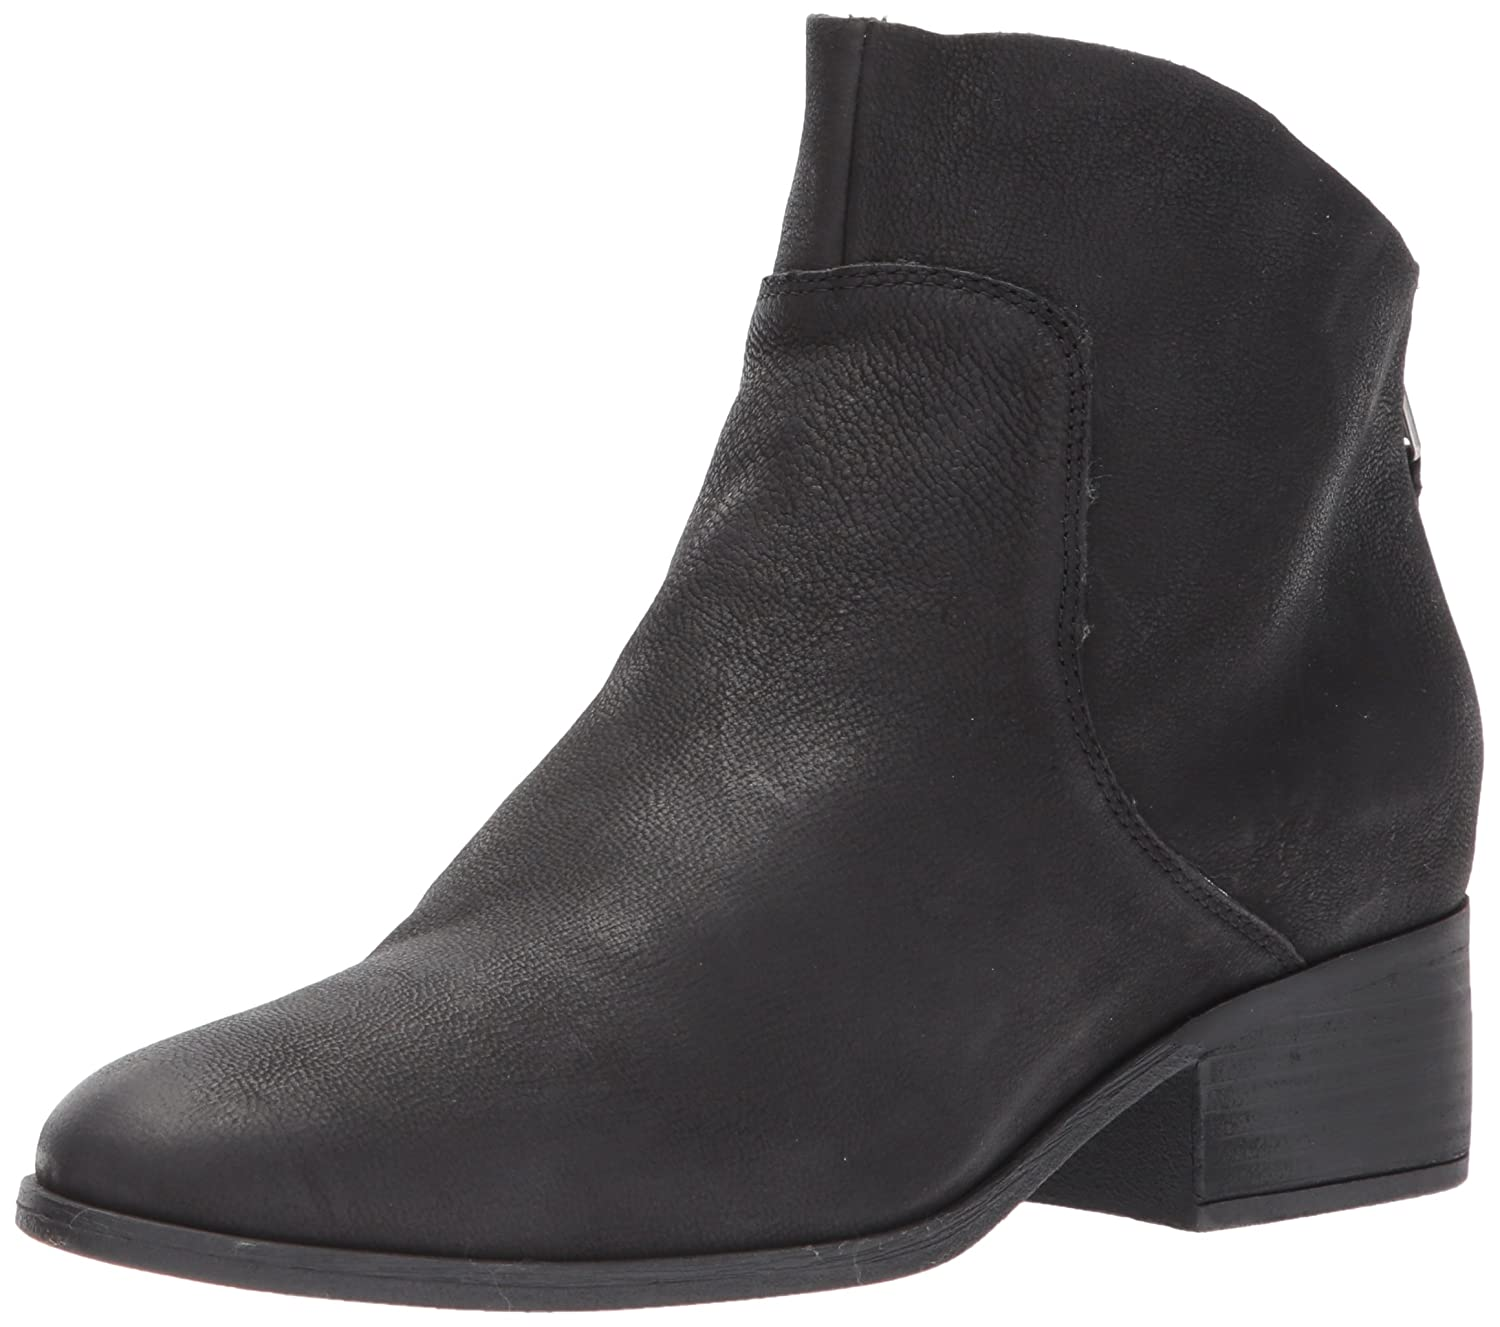 Lucky Brand Women's Lahela Fashion Boot B06XD35VG7 12 B(M) US|Black